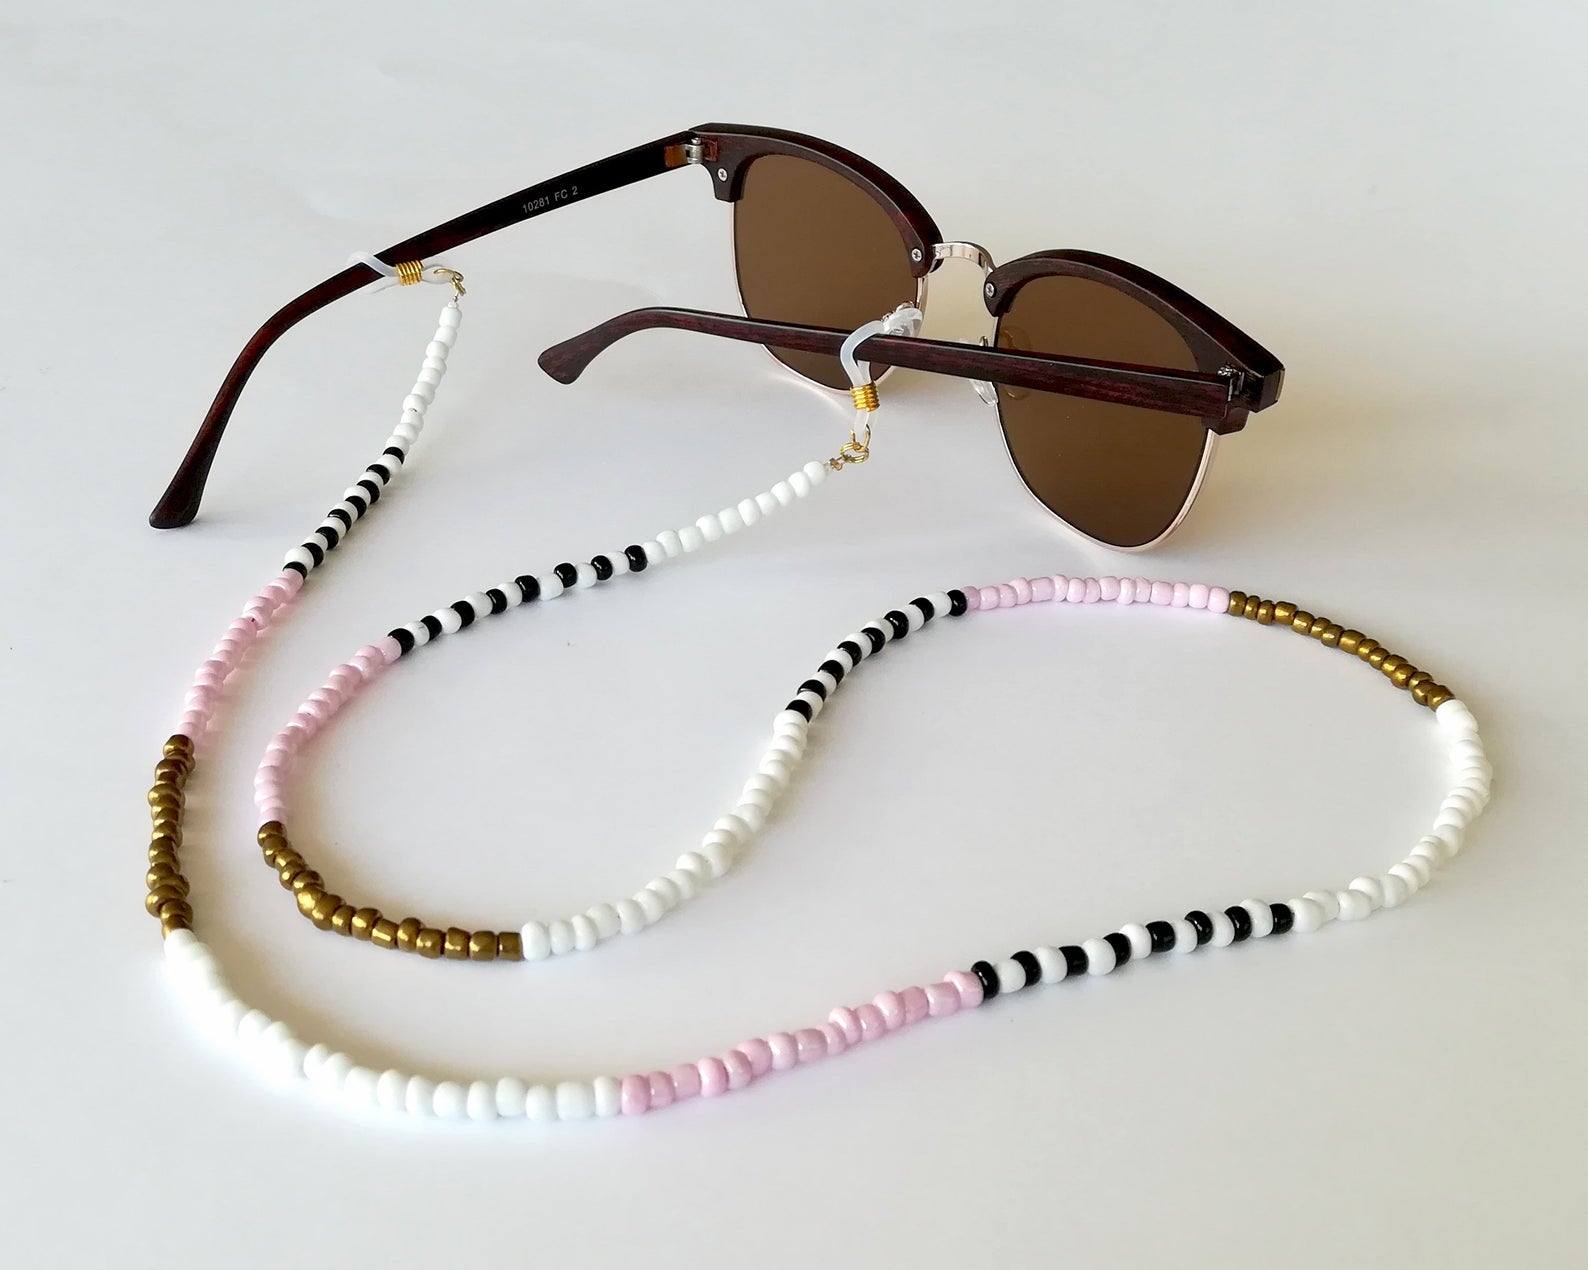 sun glasses with Eyeglass Necklace Chain or Beaded Eyeglass Holders for